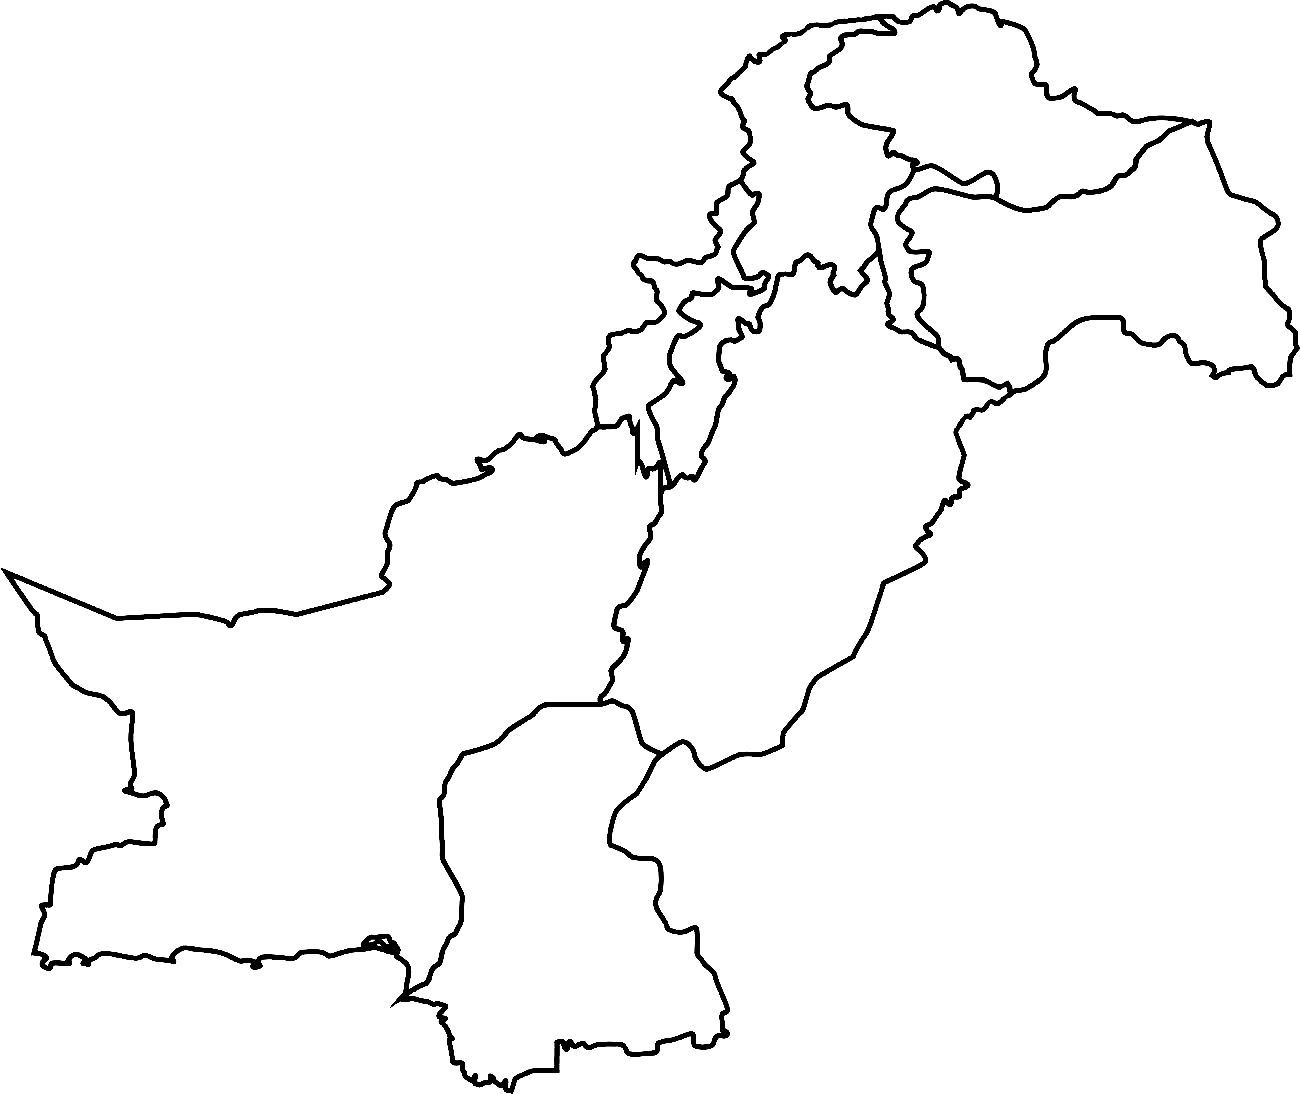 Pakistan Map Blank Pakistan full complete map with all states and provinces black